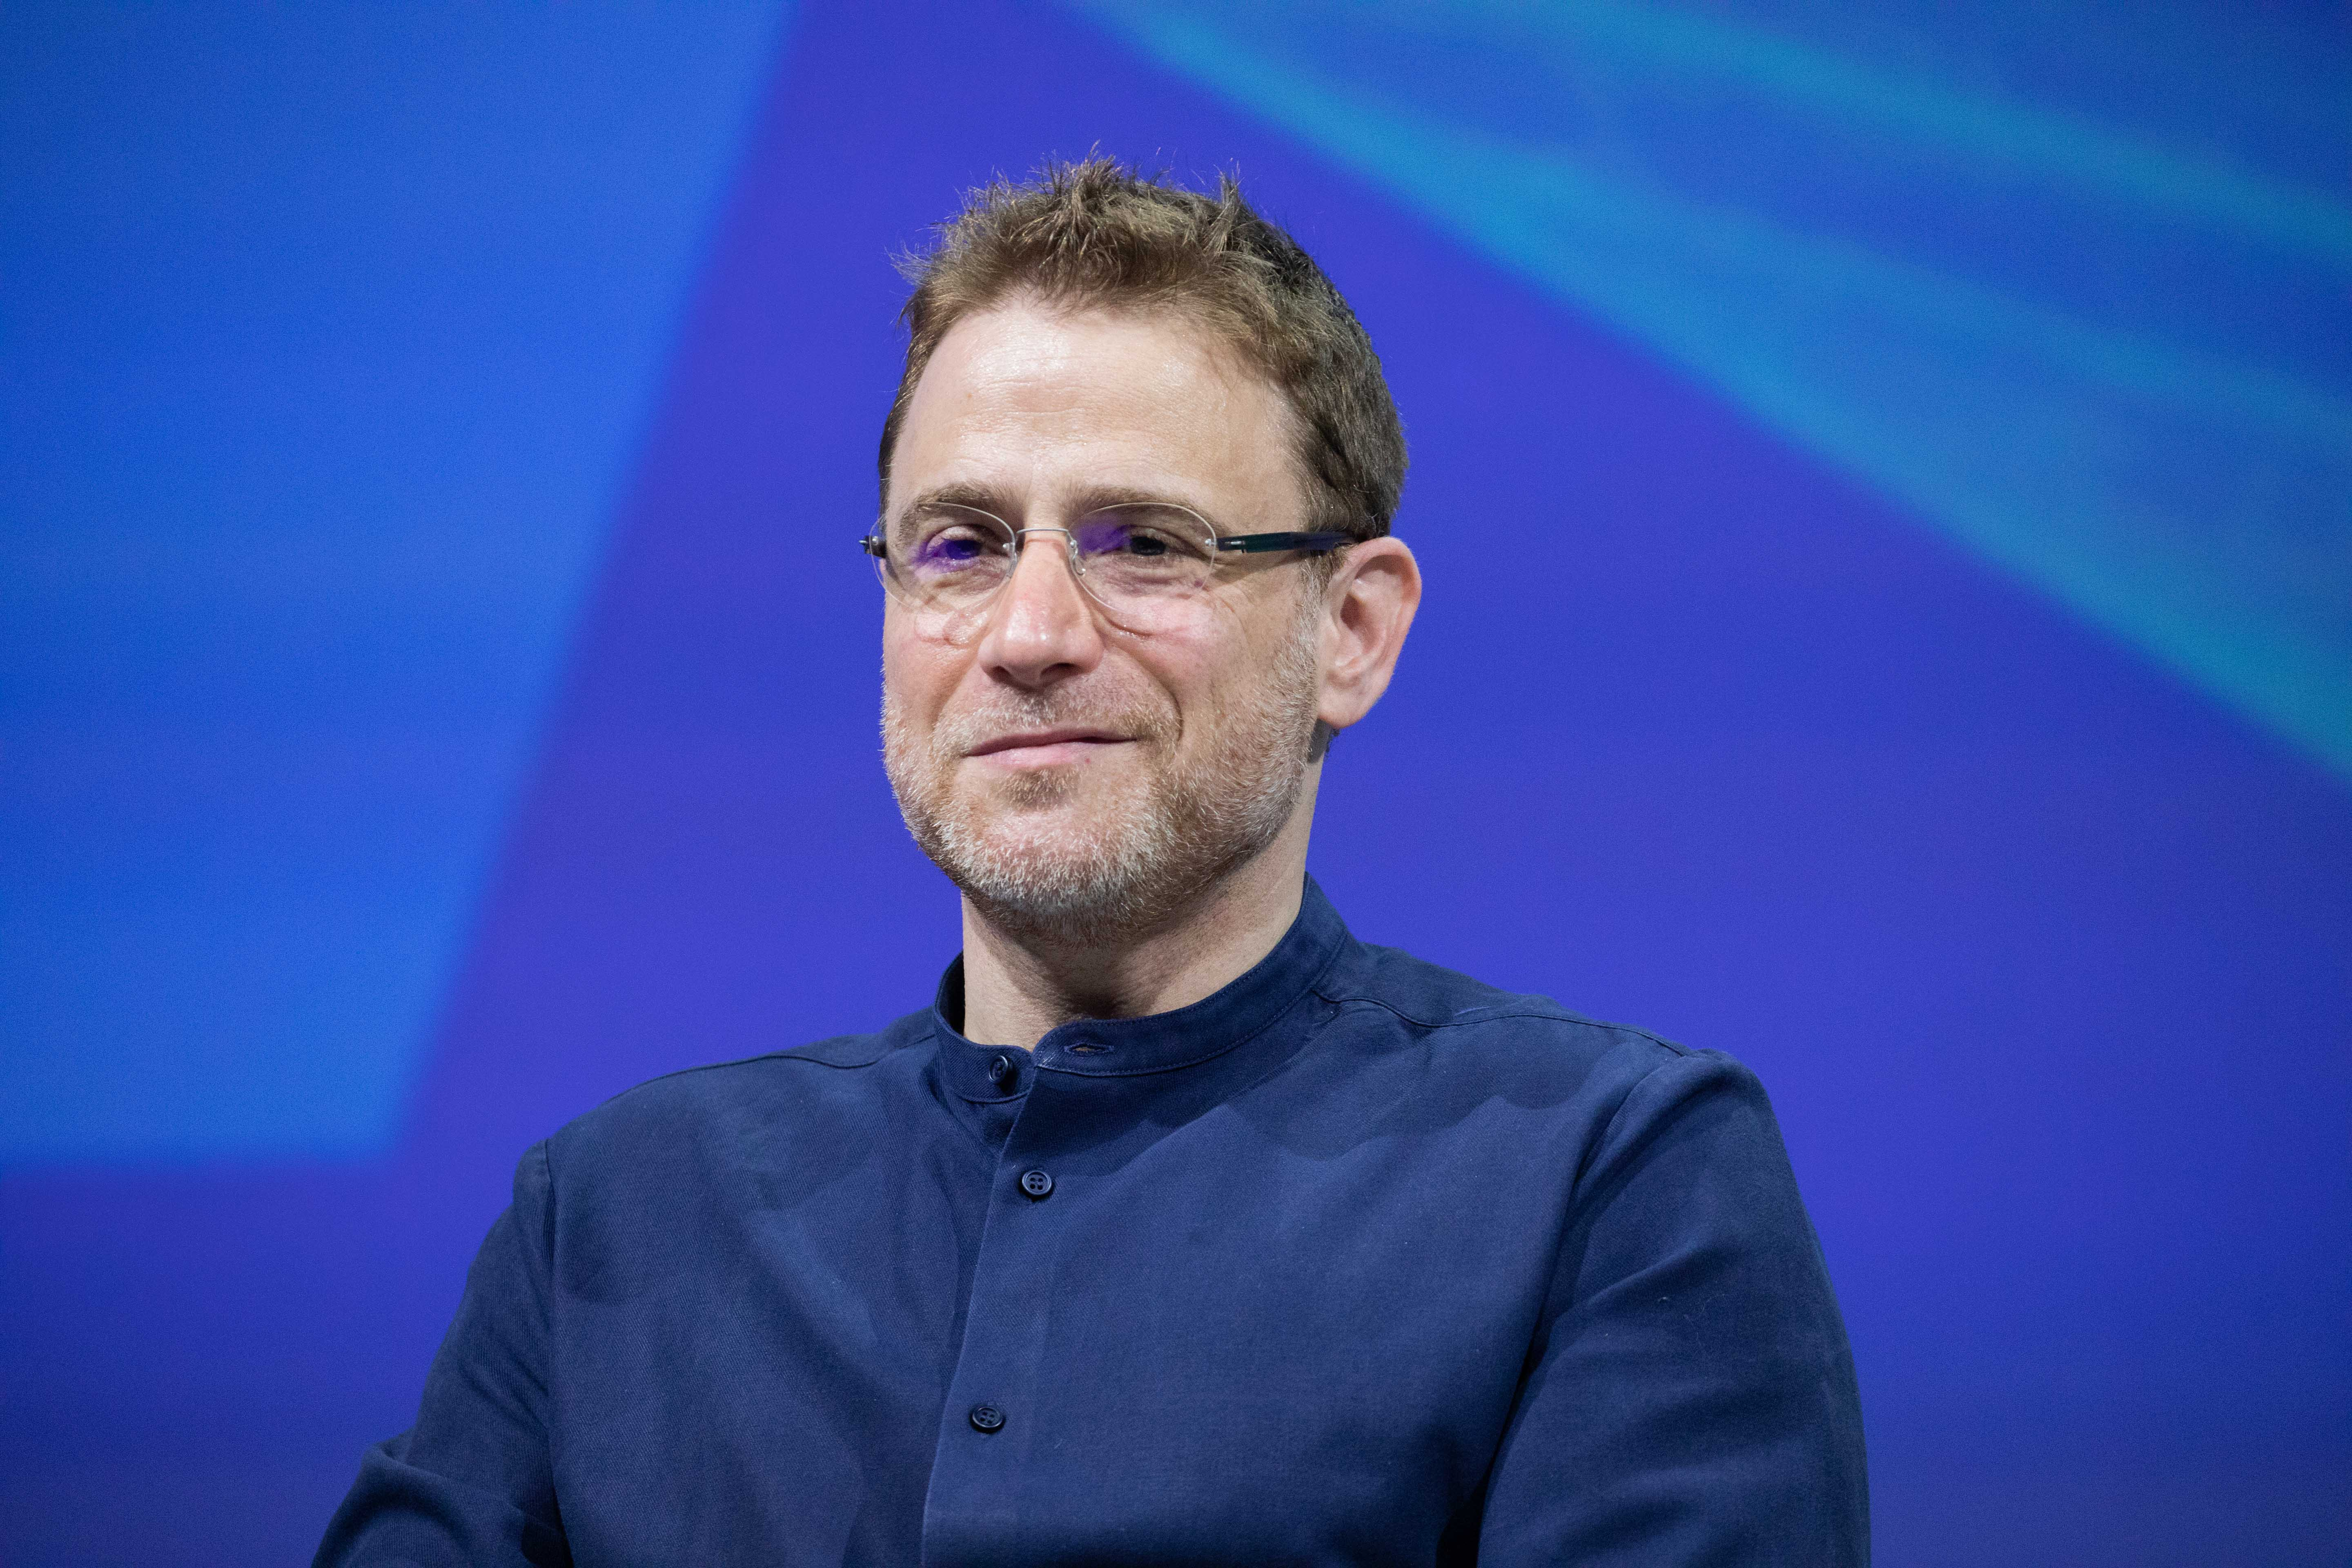 Slack has acquired its third company, Missions.